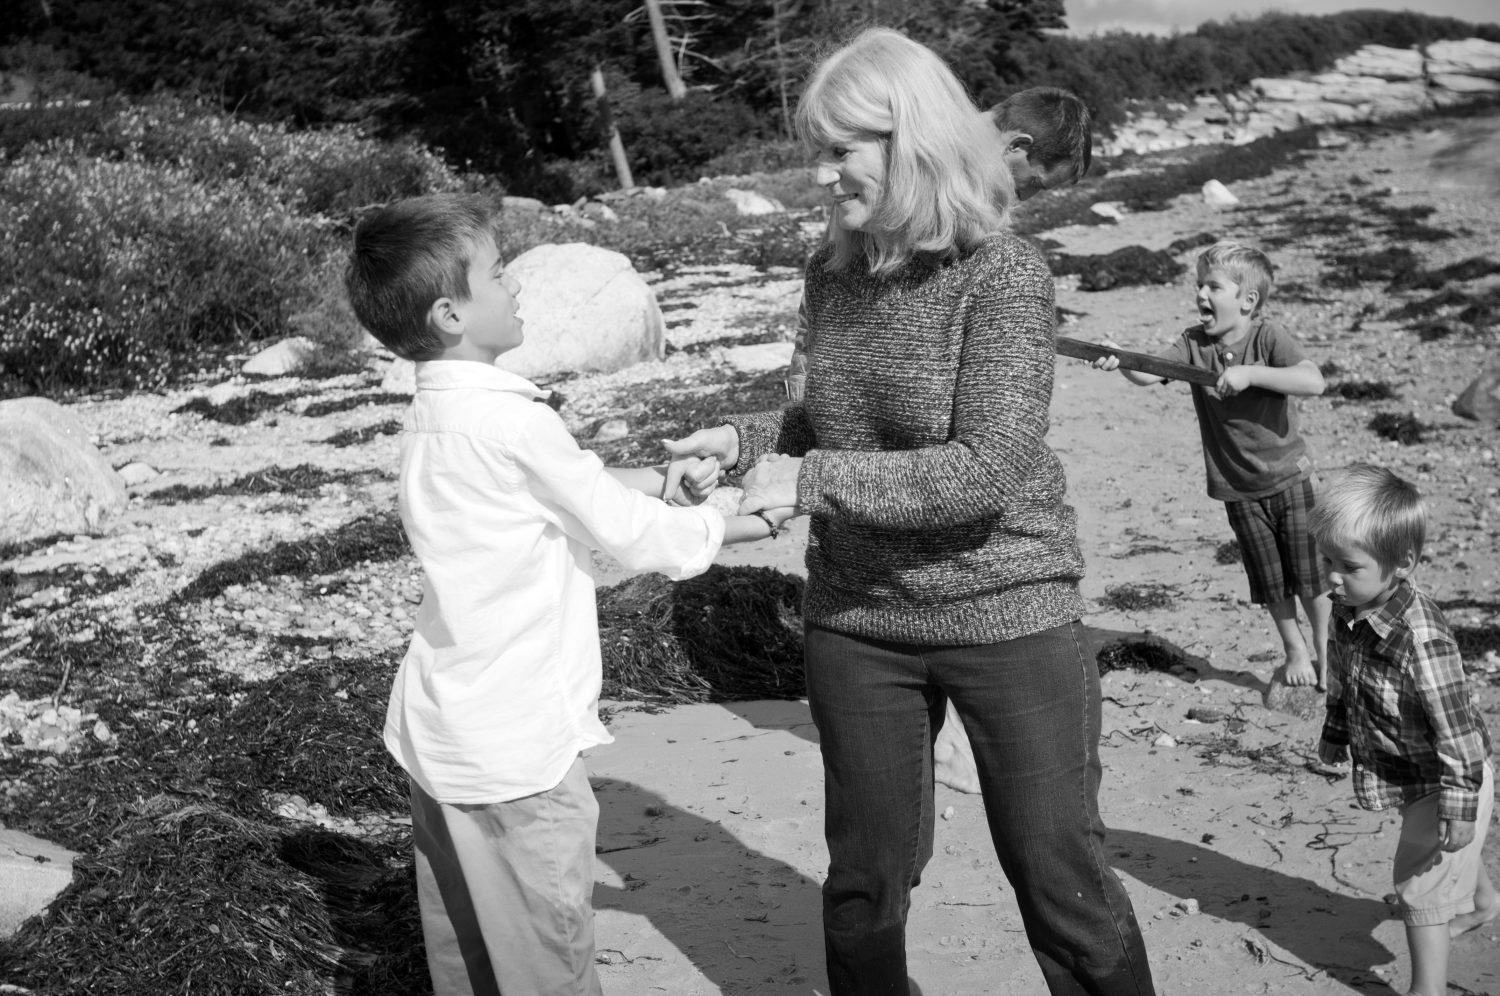 three young boys playing with their grandmother on the beach